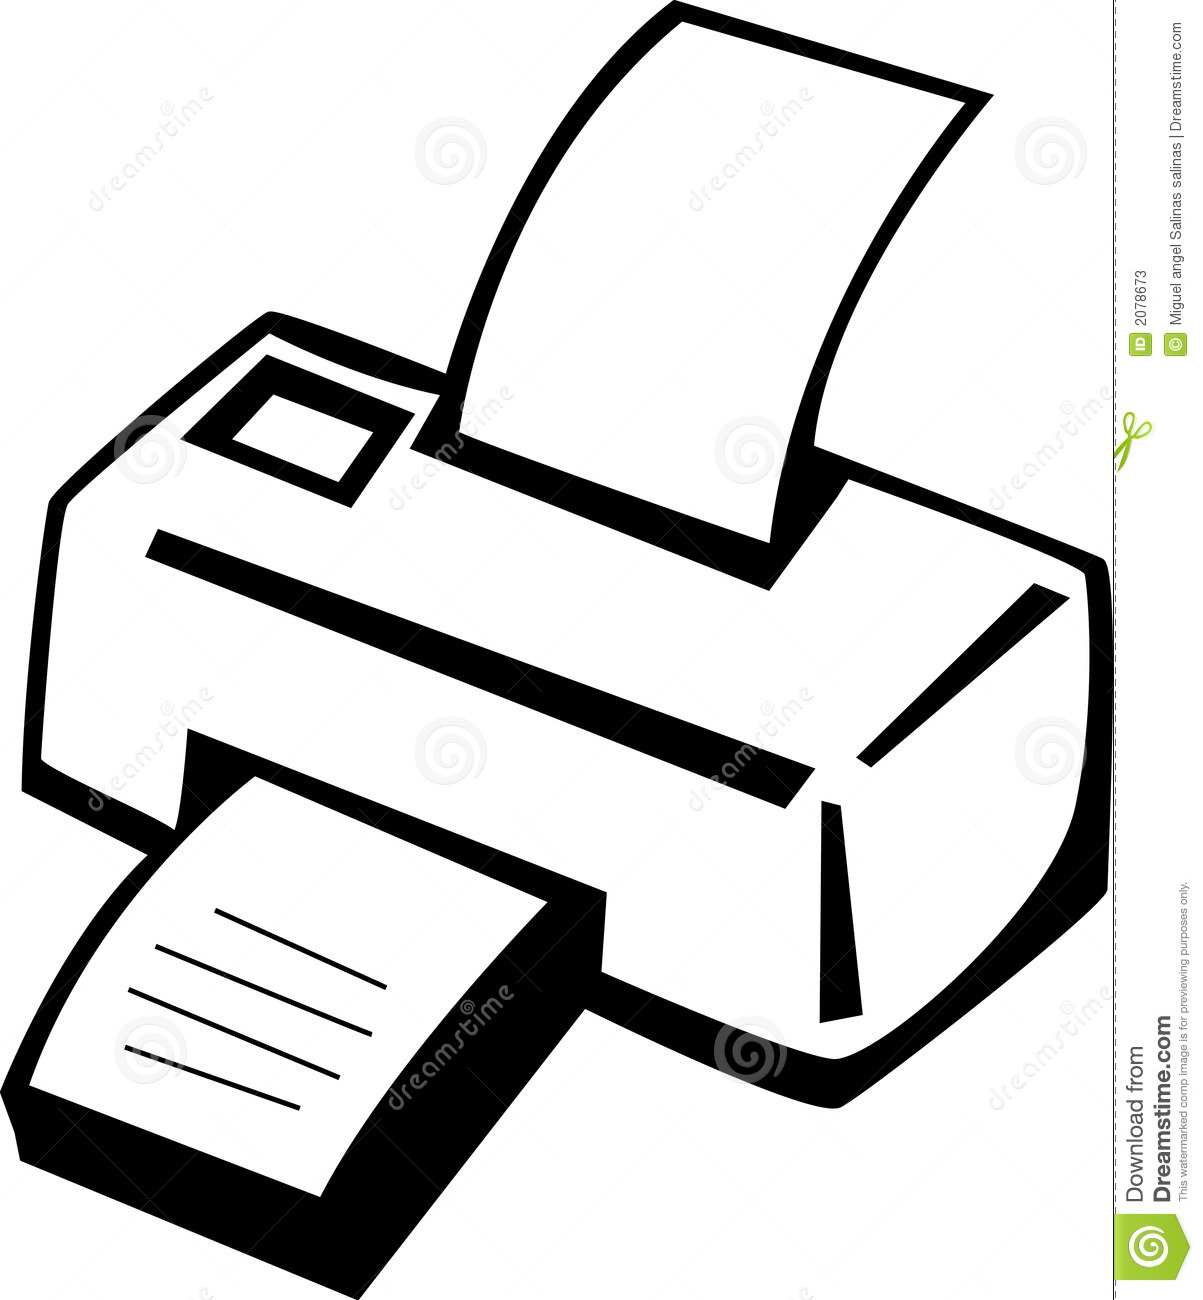 Printer Machine Vector Illustration Stock Photos